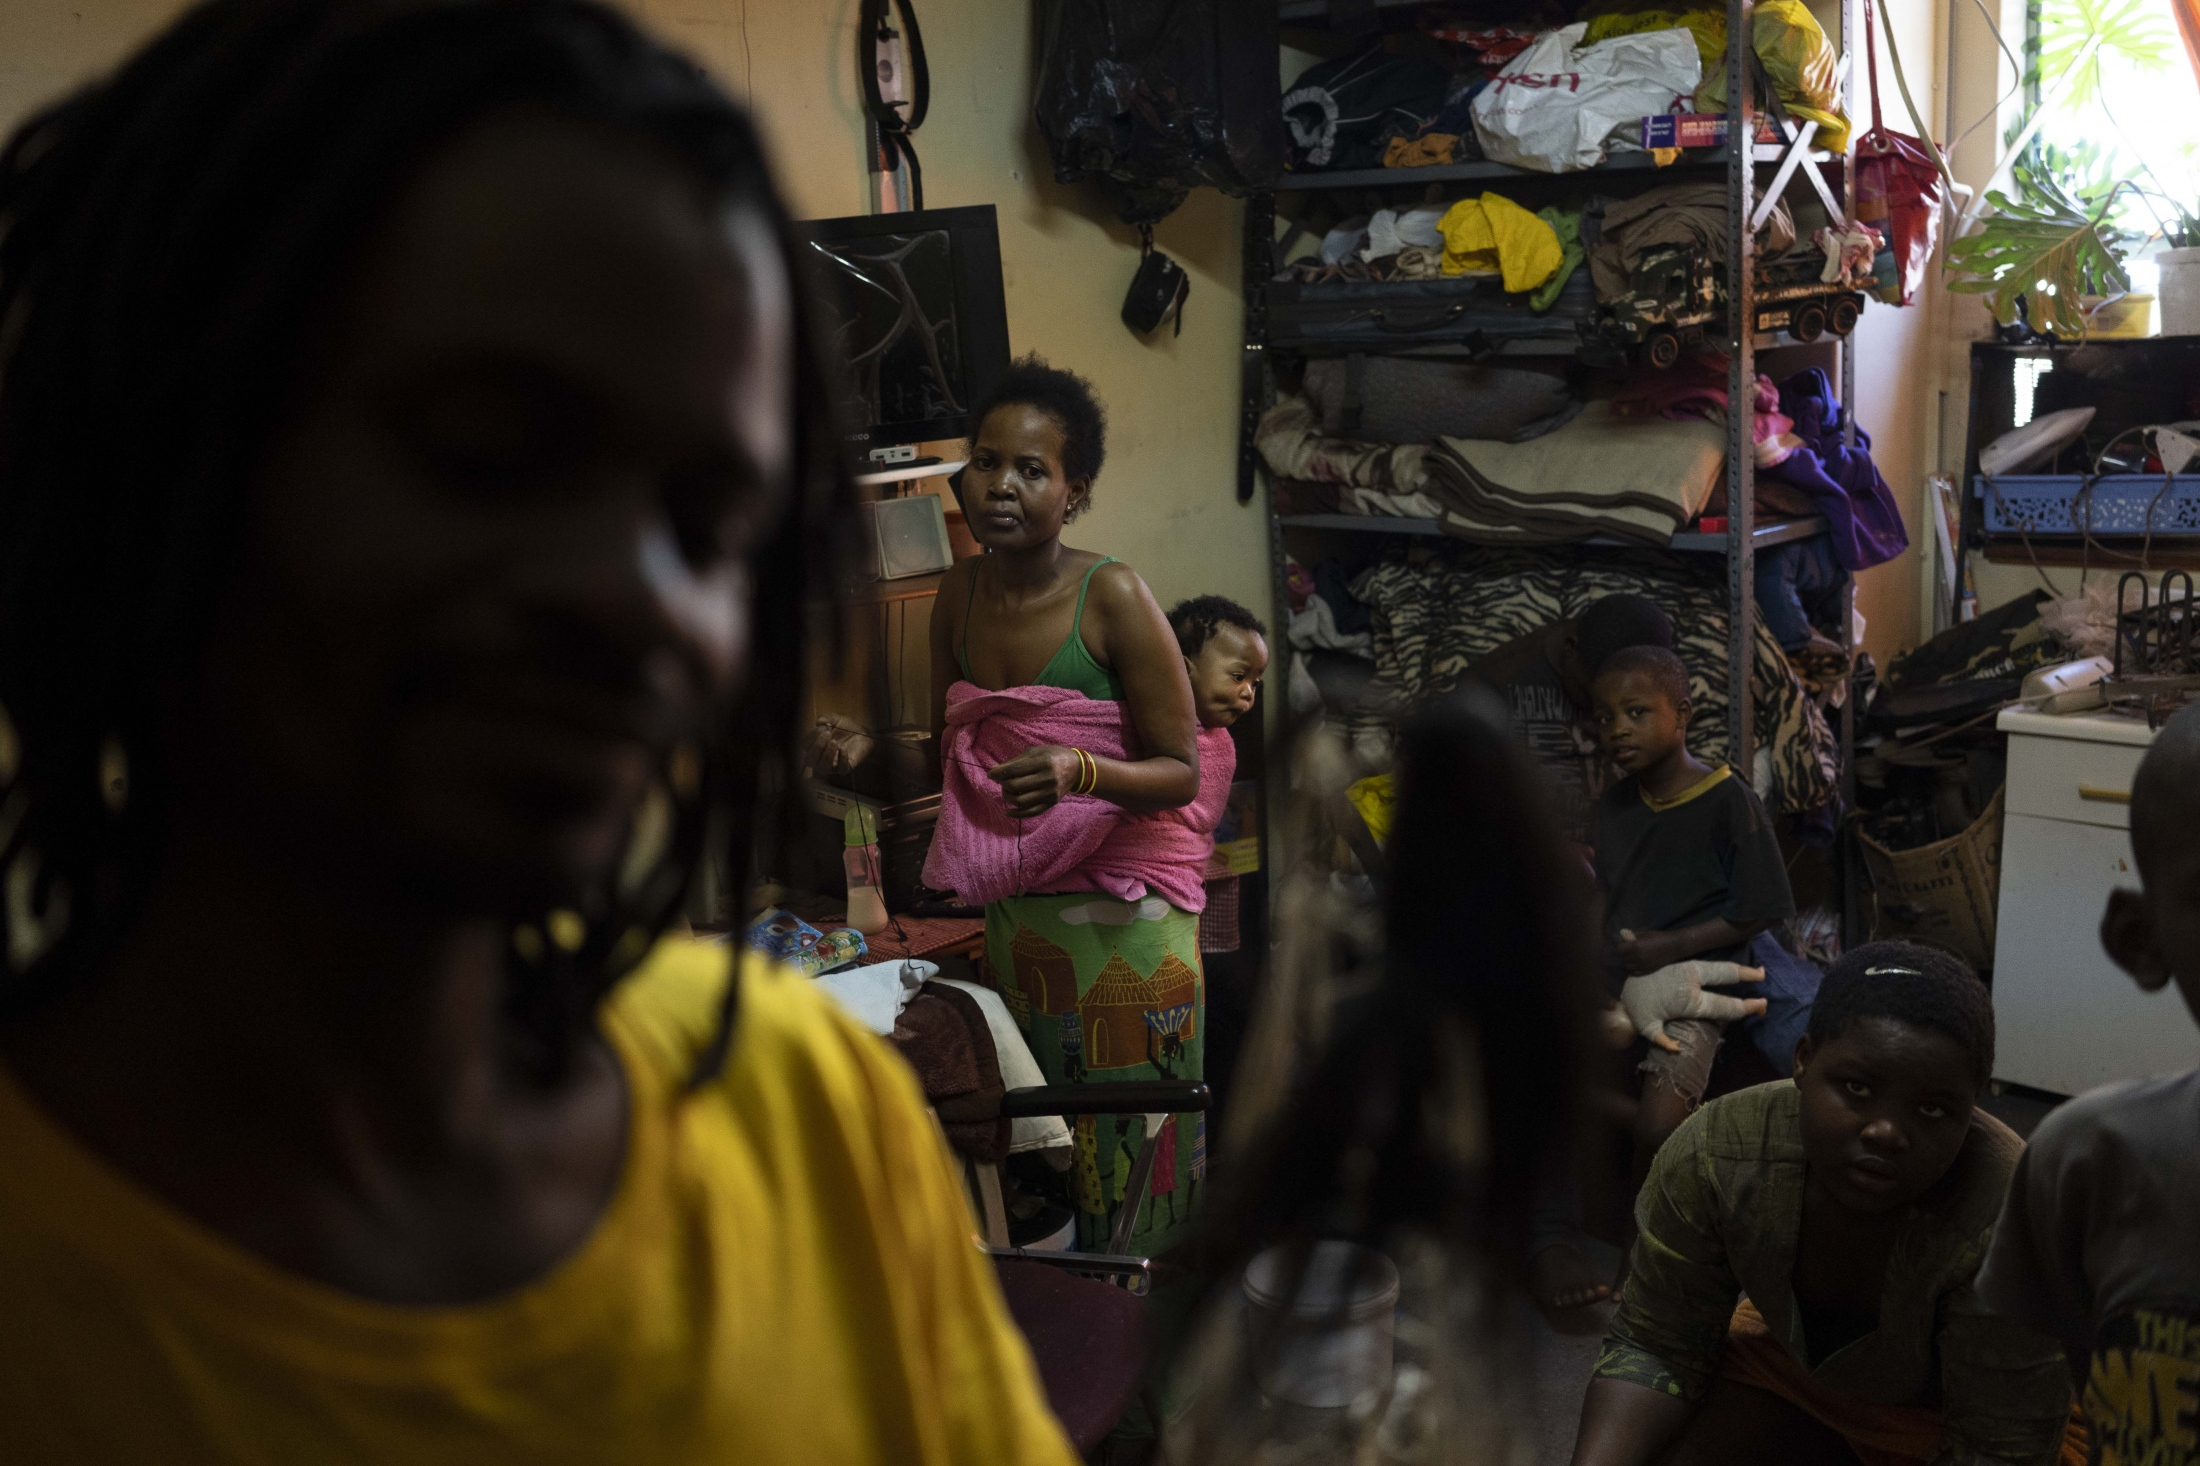 In this Tuesday, Oct. 2, 2018 photo, Zimbabwean migrant Kholakele carries her 6-month old baby in her apartment in Johannesburg. Kholakele and her husband Arnold (left) know stories about missing migrants via friends and relatives. They fear for their five children. If one of them leaves their apartment in Johannesburg downtown for longer than ten minutes, they phone them.